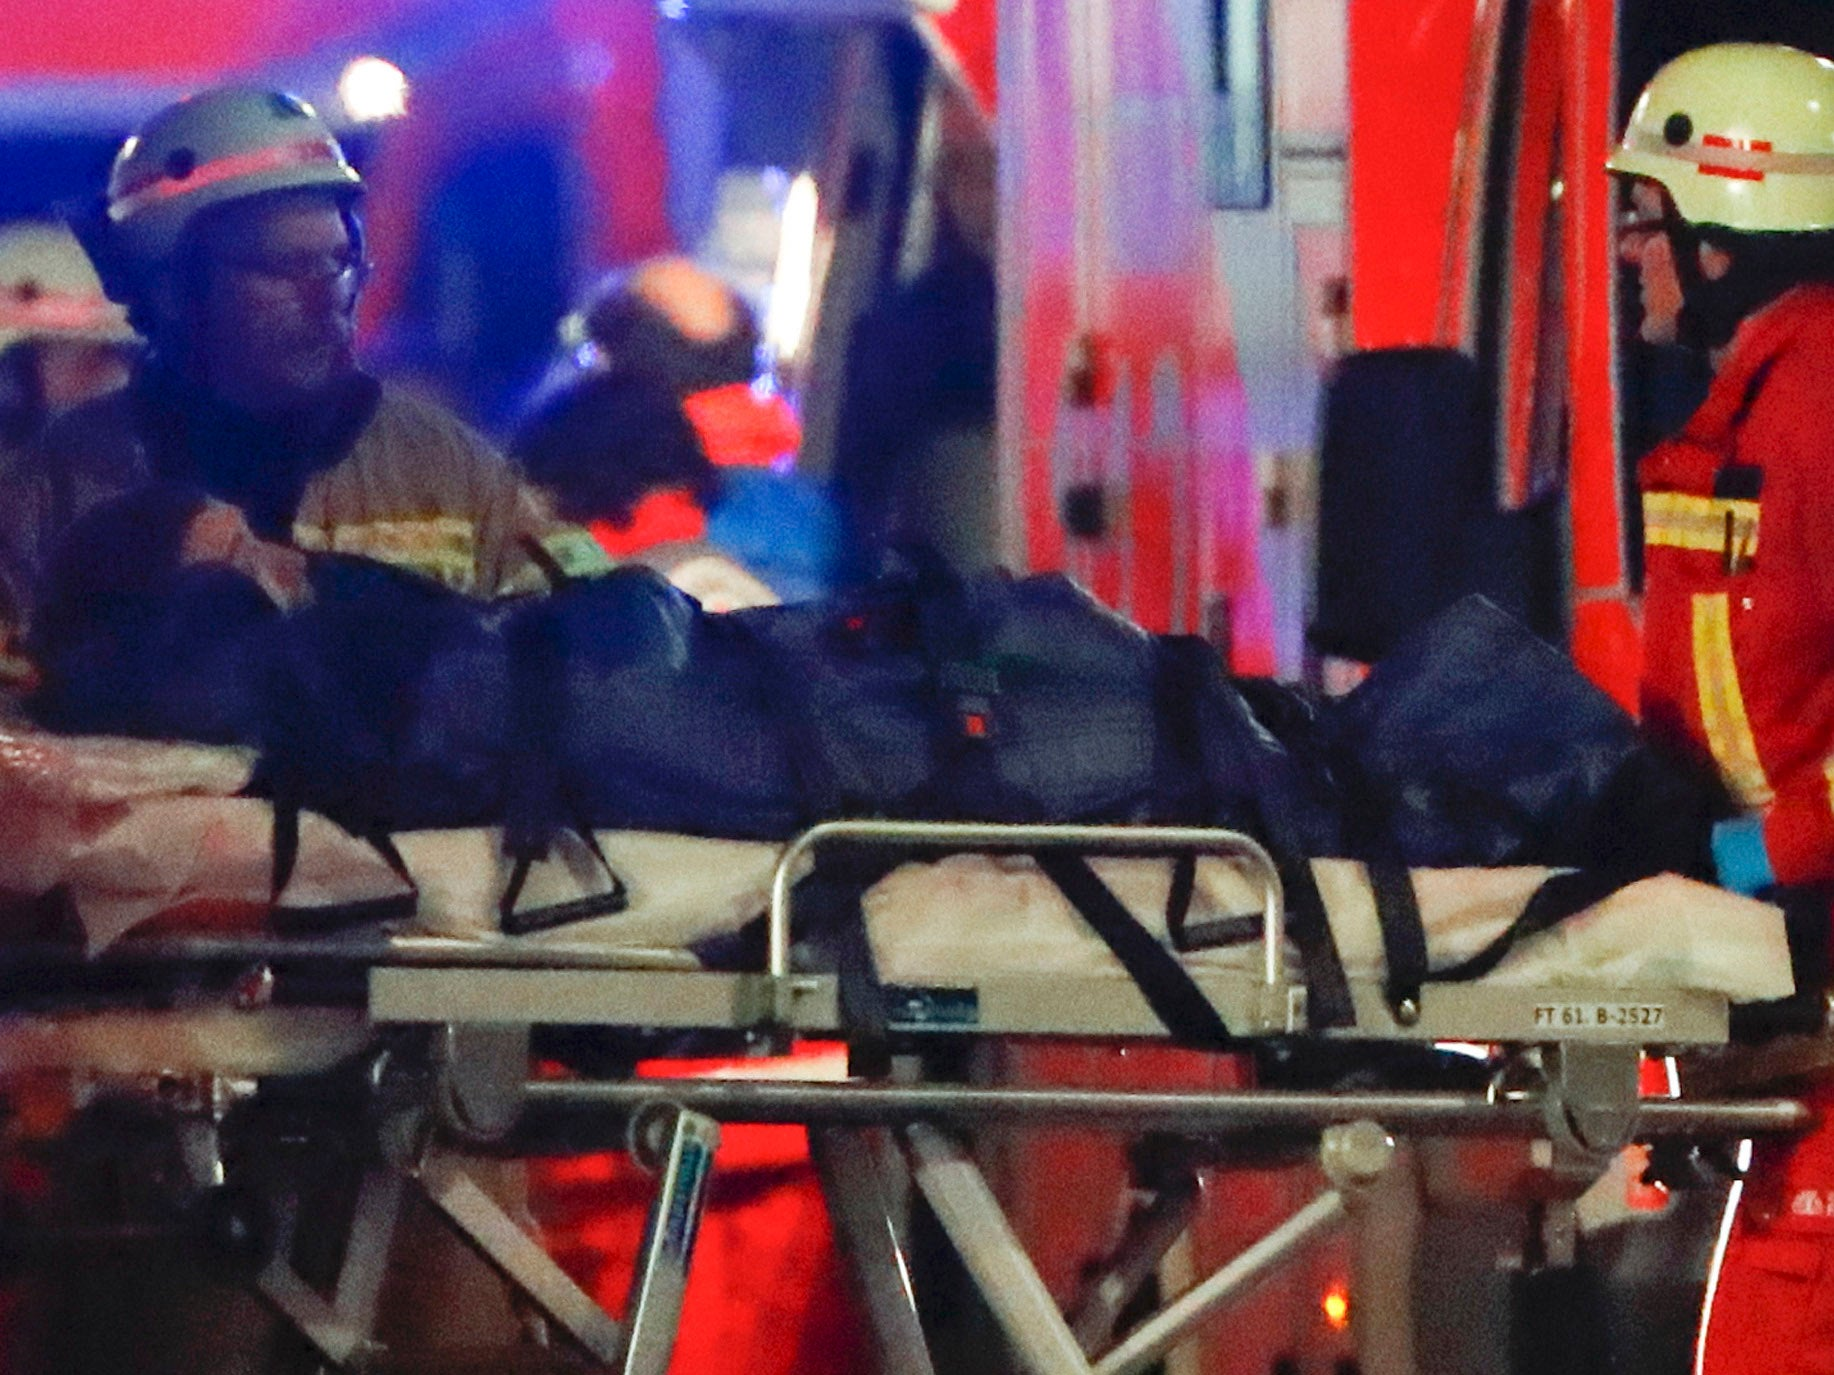 Berlin Lorry 39 Terror 39 Attack 39 39 There Was Blood And Bodies